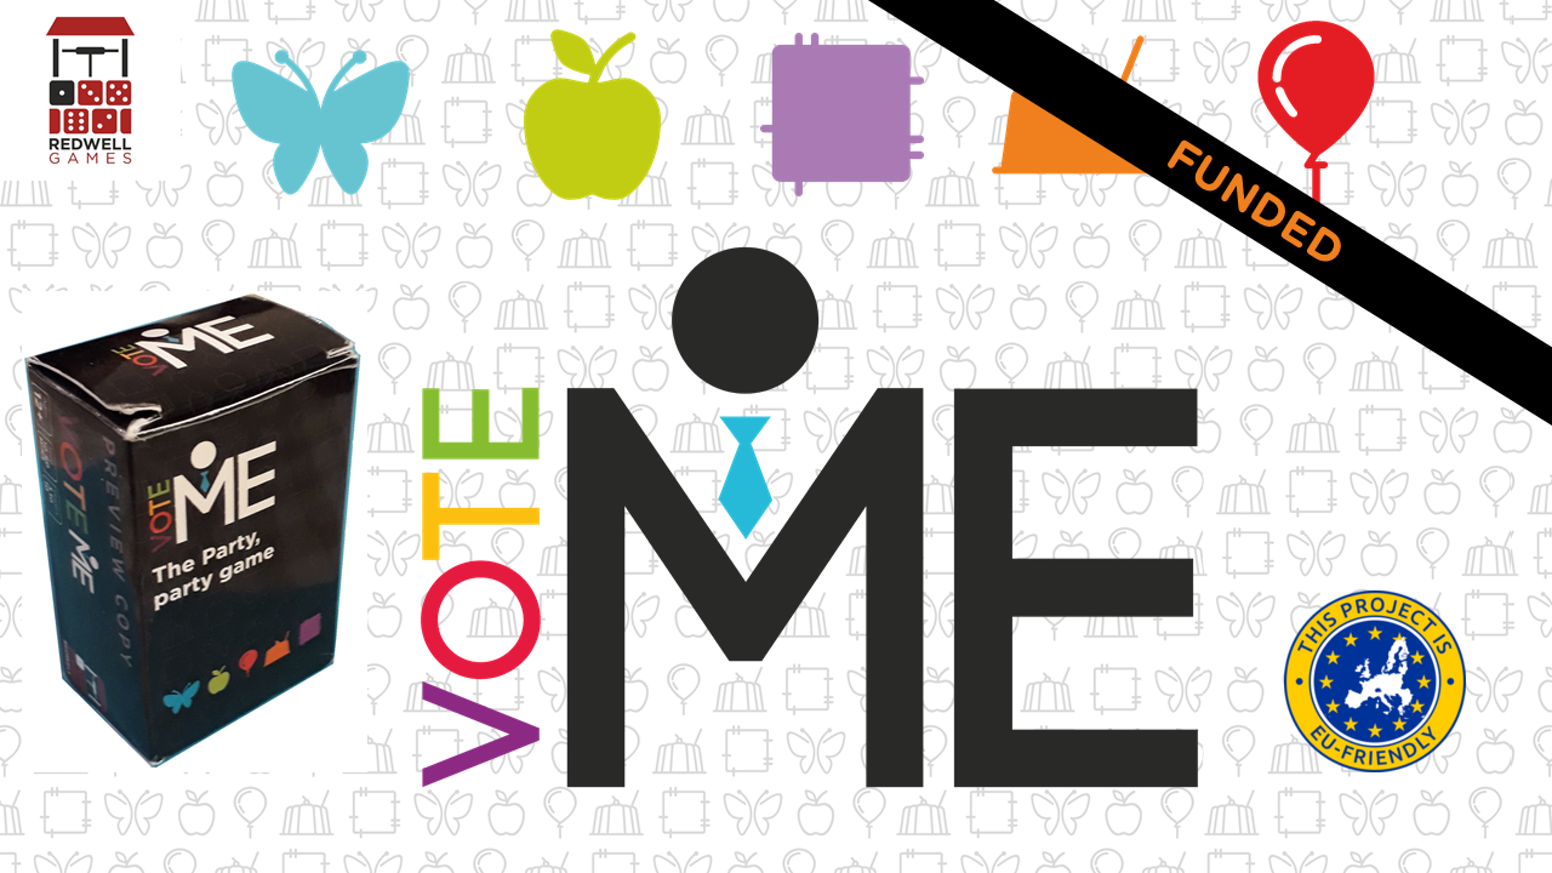 Vote ME! A party game, where players give speeches on randomly chosen policies and themes to win the most votes.